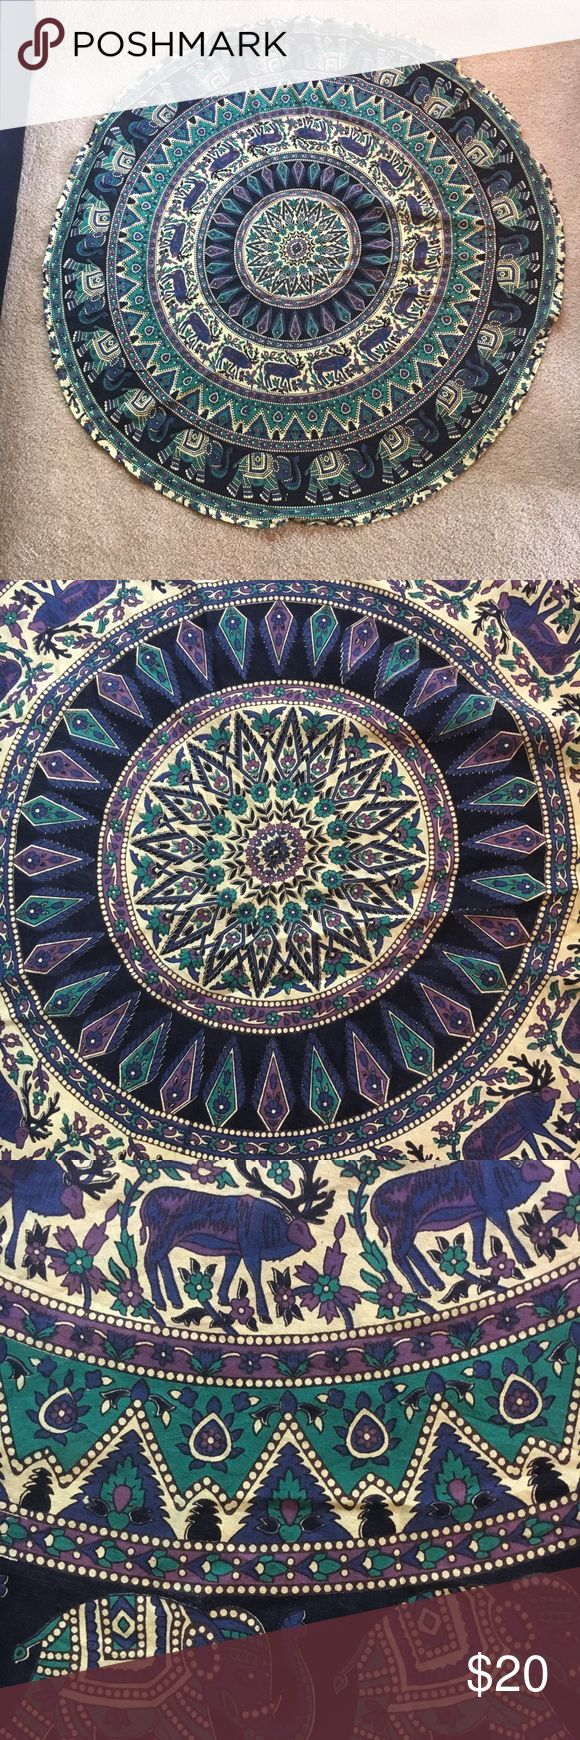 """Tapestry, Chic Elephant Gypsy Print Blue/Purple Ready for your next beach party or gypsy home den! Brand new, never used. For you mathematicians out there it, 23.5"""" radius (47"""" diameter). It is thin material, but decent quality. I'm more of a skull/bones rock 'n' roller therefore parting with this. Gypsy hearts run free! Could also be worn as a coverup or even cape! Brand new without tags. Rug/tapestry for that wild root vibe! Witchy earth goddess worthy! Accessories"""